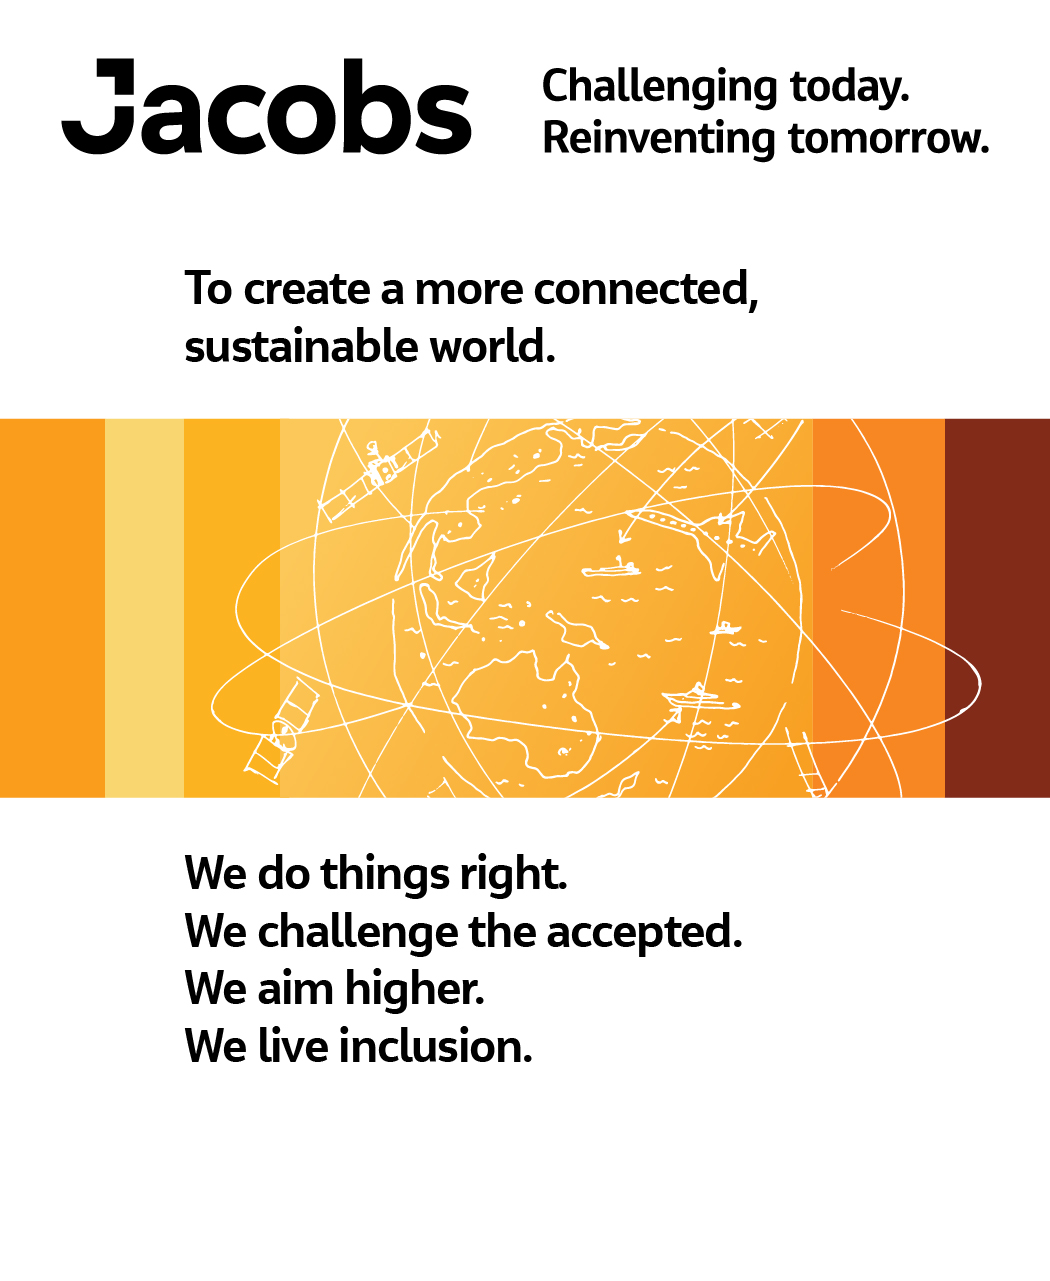 Jacobs values. Challenging today. Reinventing tomorrow. To create a more connected, sustainable world. We do things right. We challenge the accepted. We aim higher. We live inclusion.